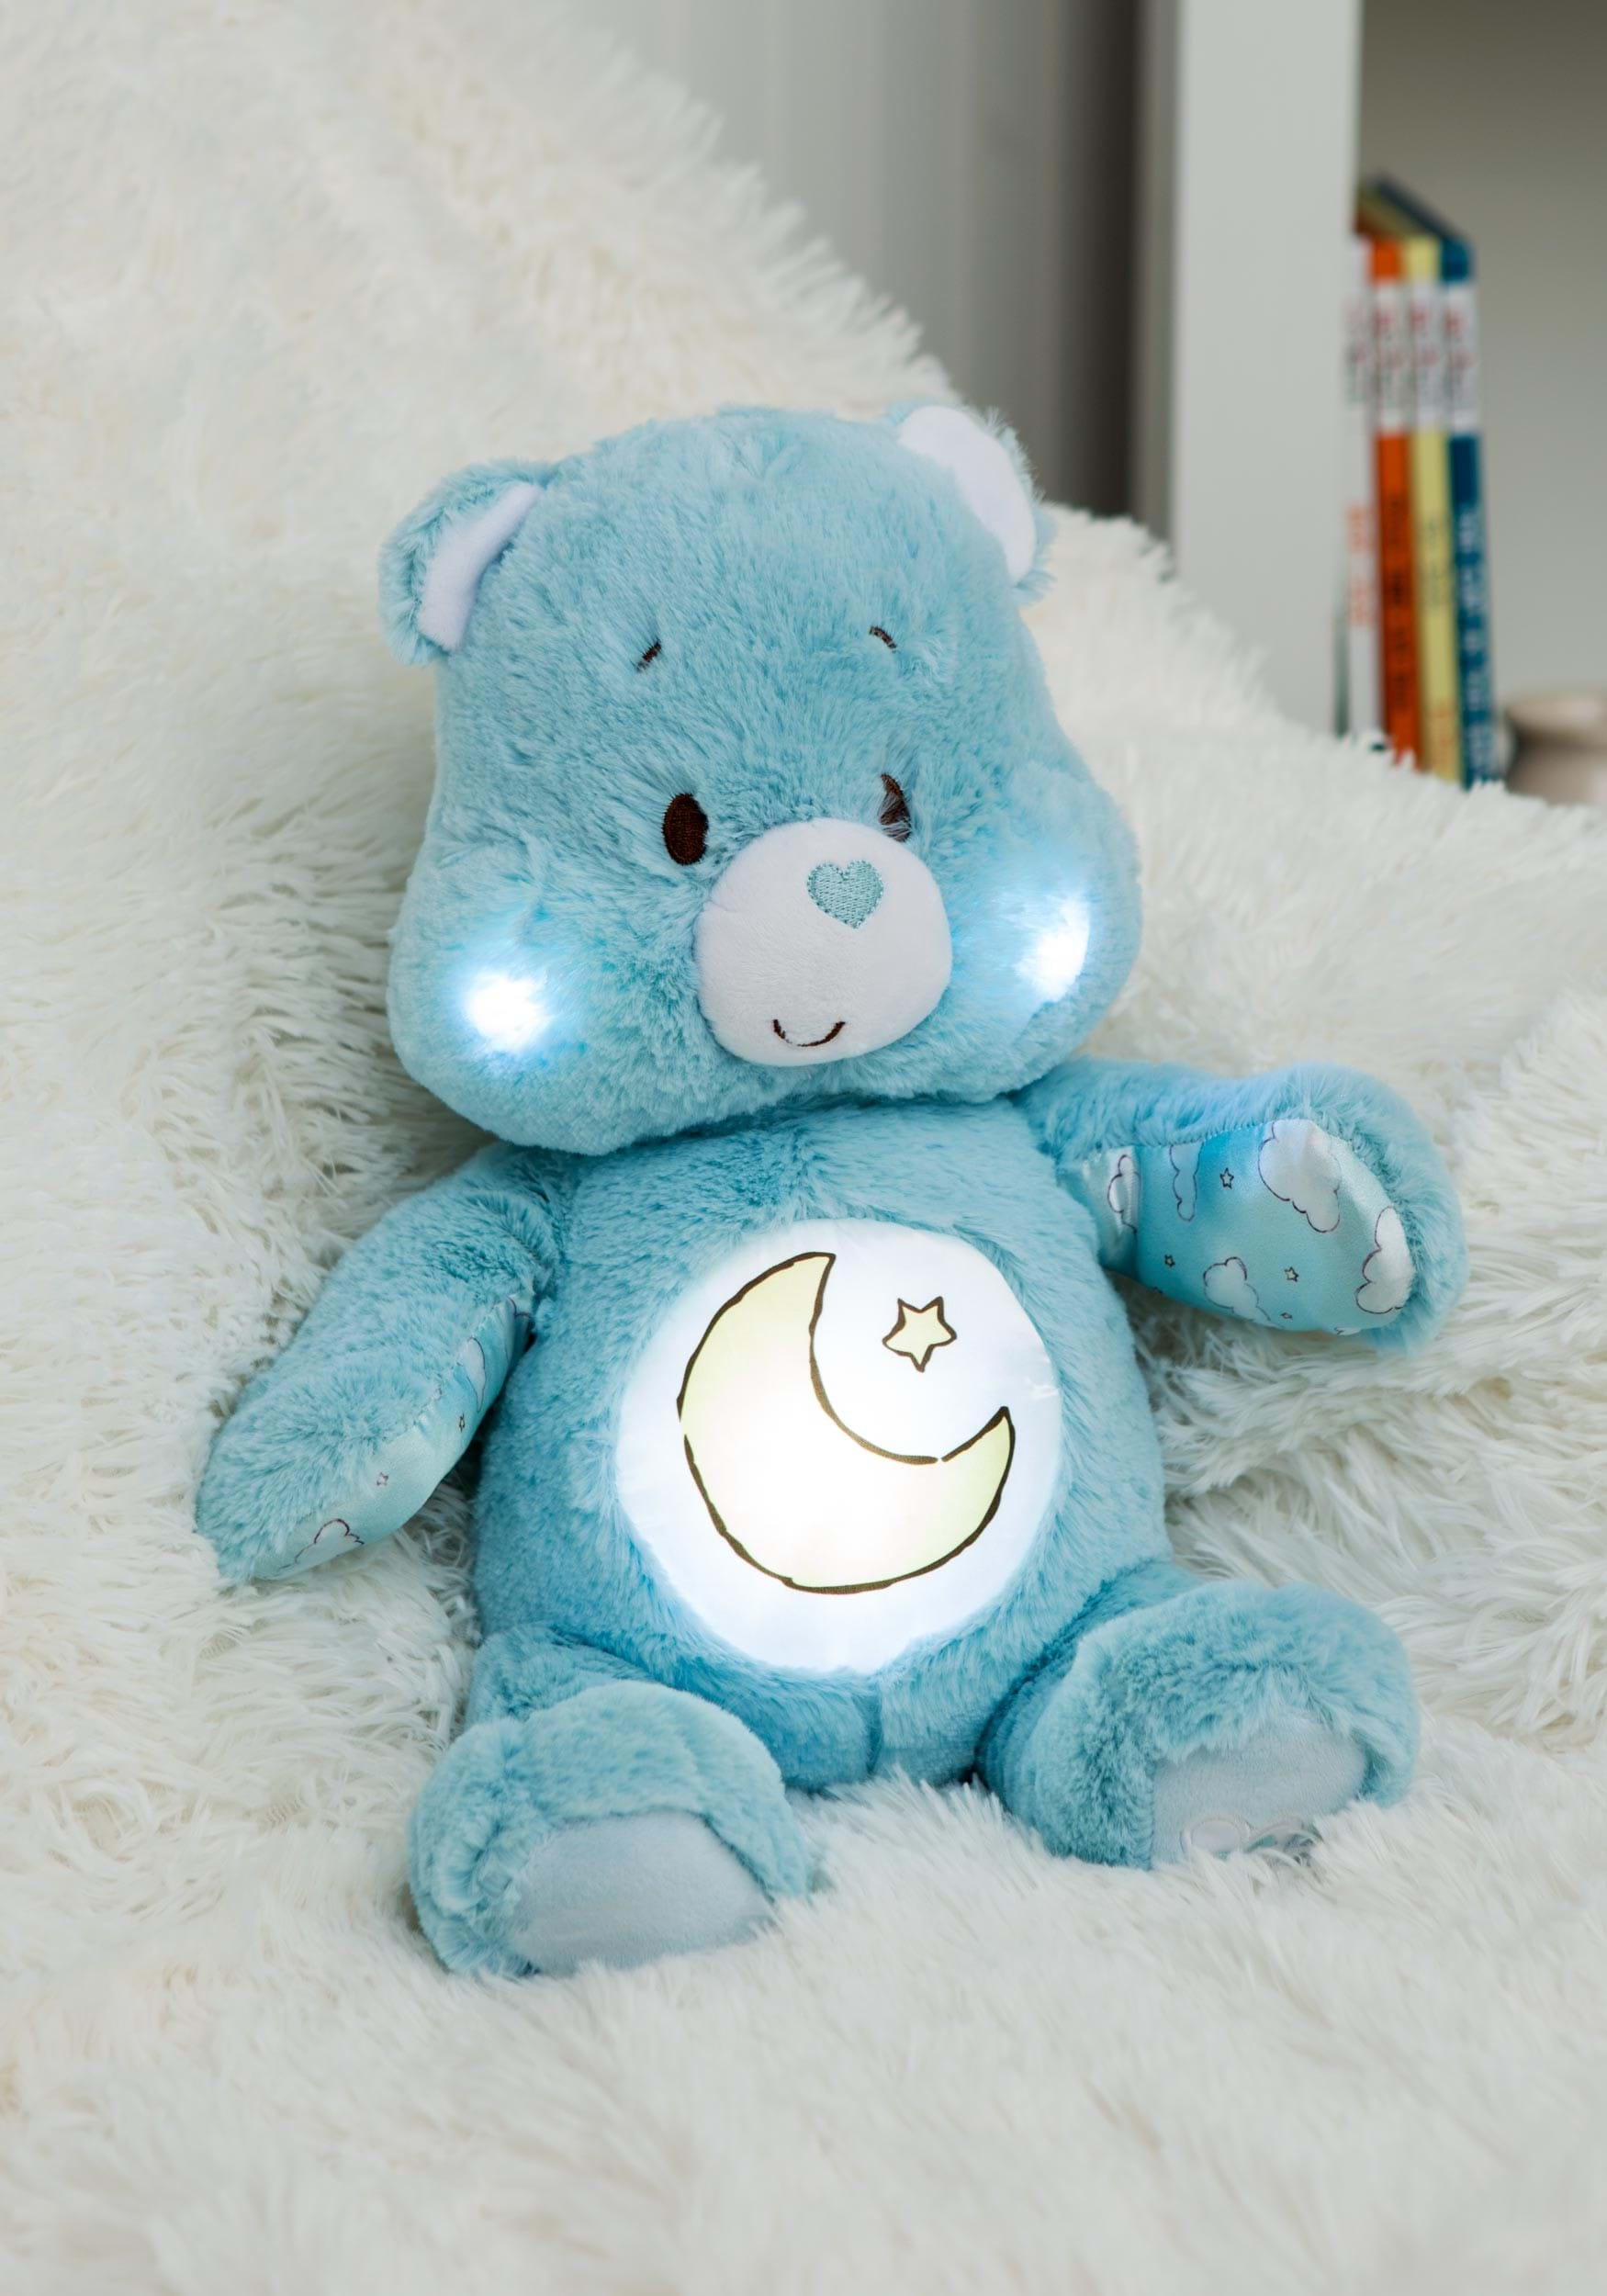 Care Bears Bedtime Bear Soother Plush w/ Music & Lights